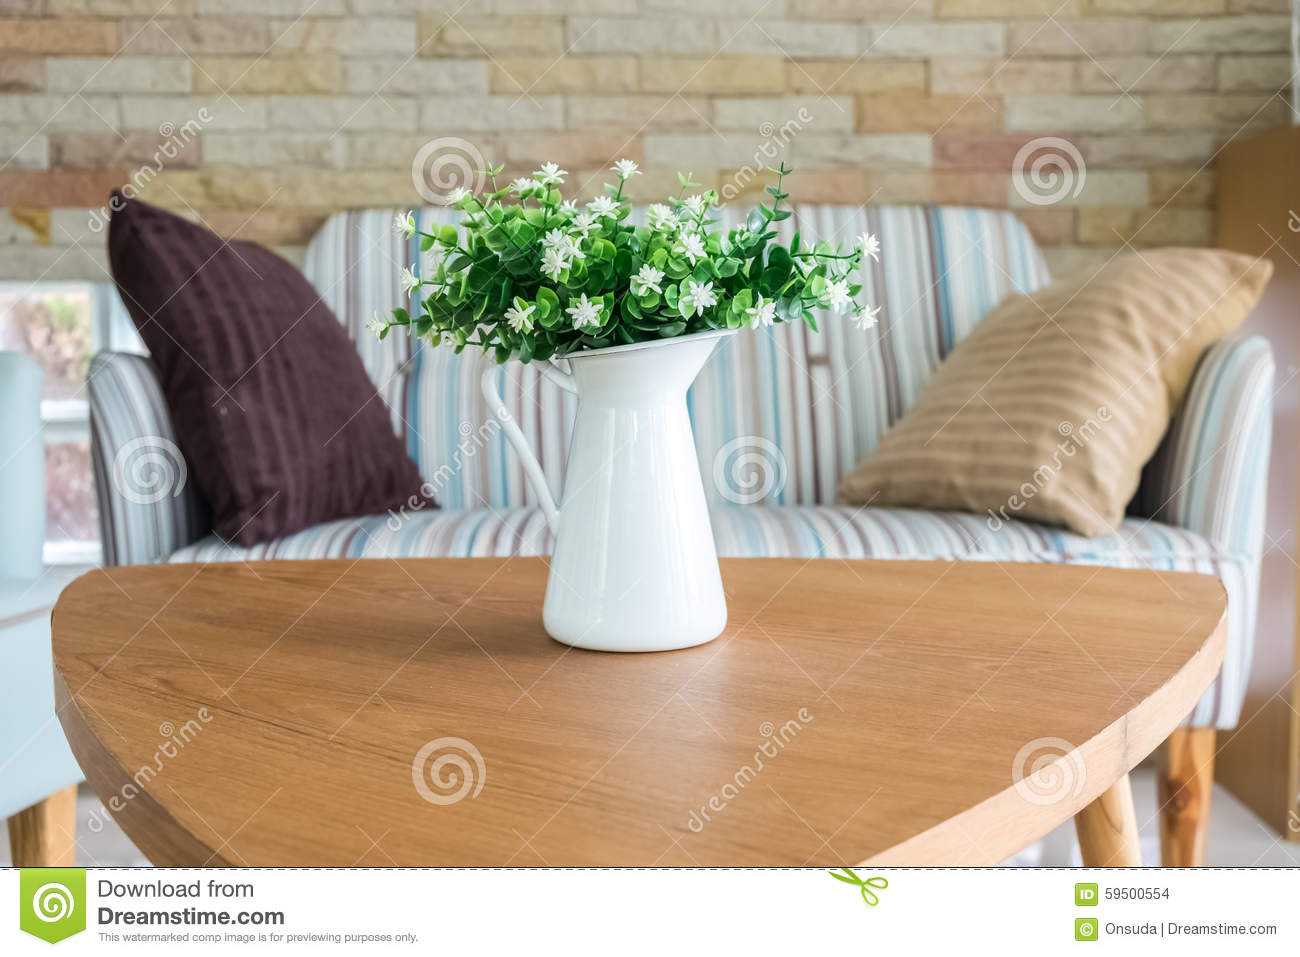 Living Room Decoration With Flower Vase Stock Photo - Image of ... on chair living room, tables living room, fireplace living room, glass living room, animal living room, home decoration living room, chandeliers living room, floral living room, pillow living room, tiles living room, books living room,